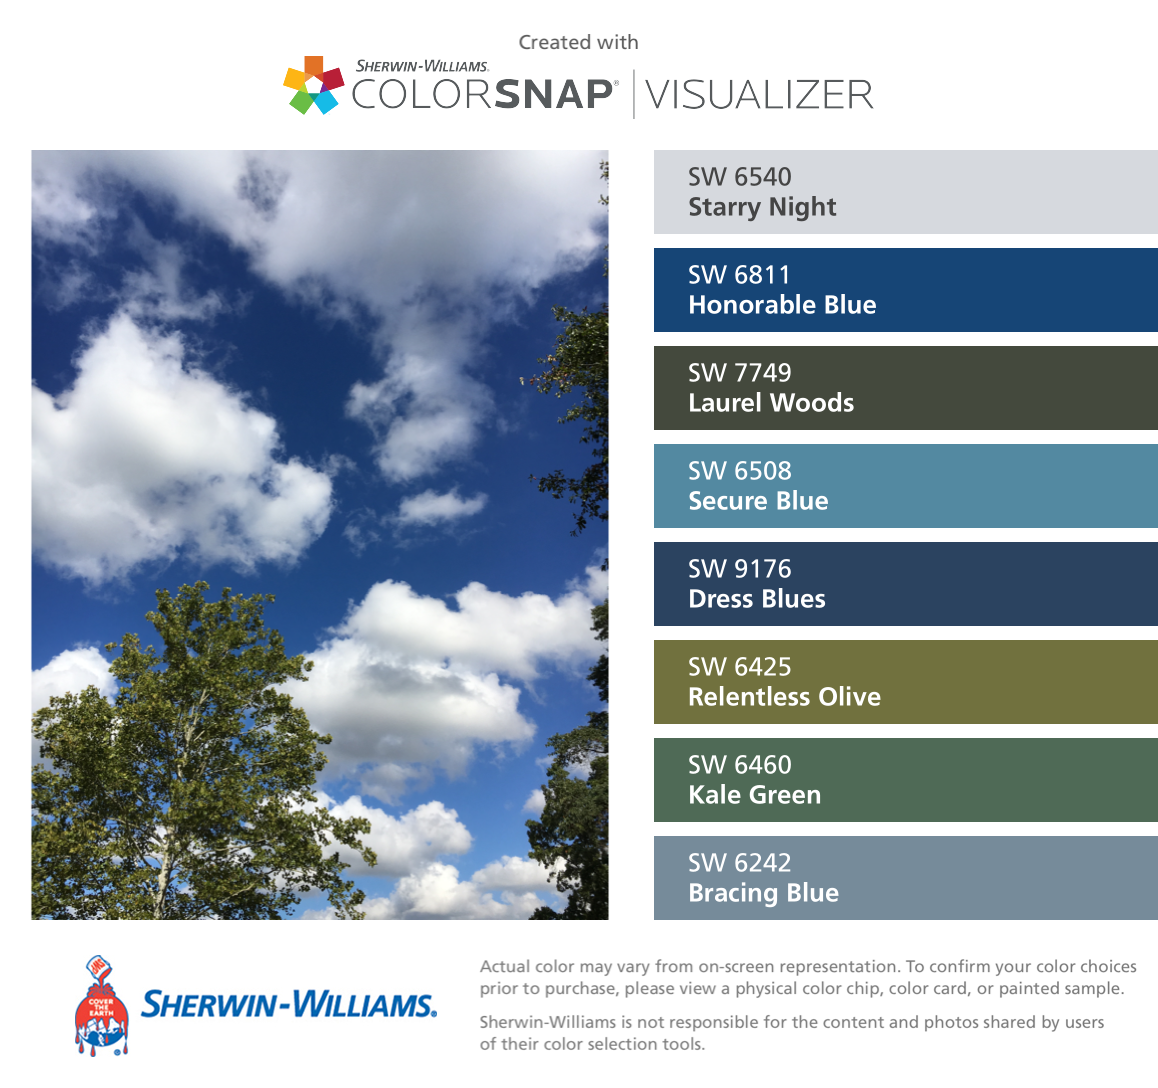 I Found These Colors With Colorsnap Visualizer For Iphone By Sherwin Williams Starry Night Sw 6540 Paint Color App Blue Green Paints Matching Paint Colors [ 1088 x 1158 Pixel ]